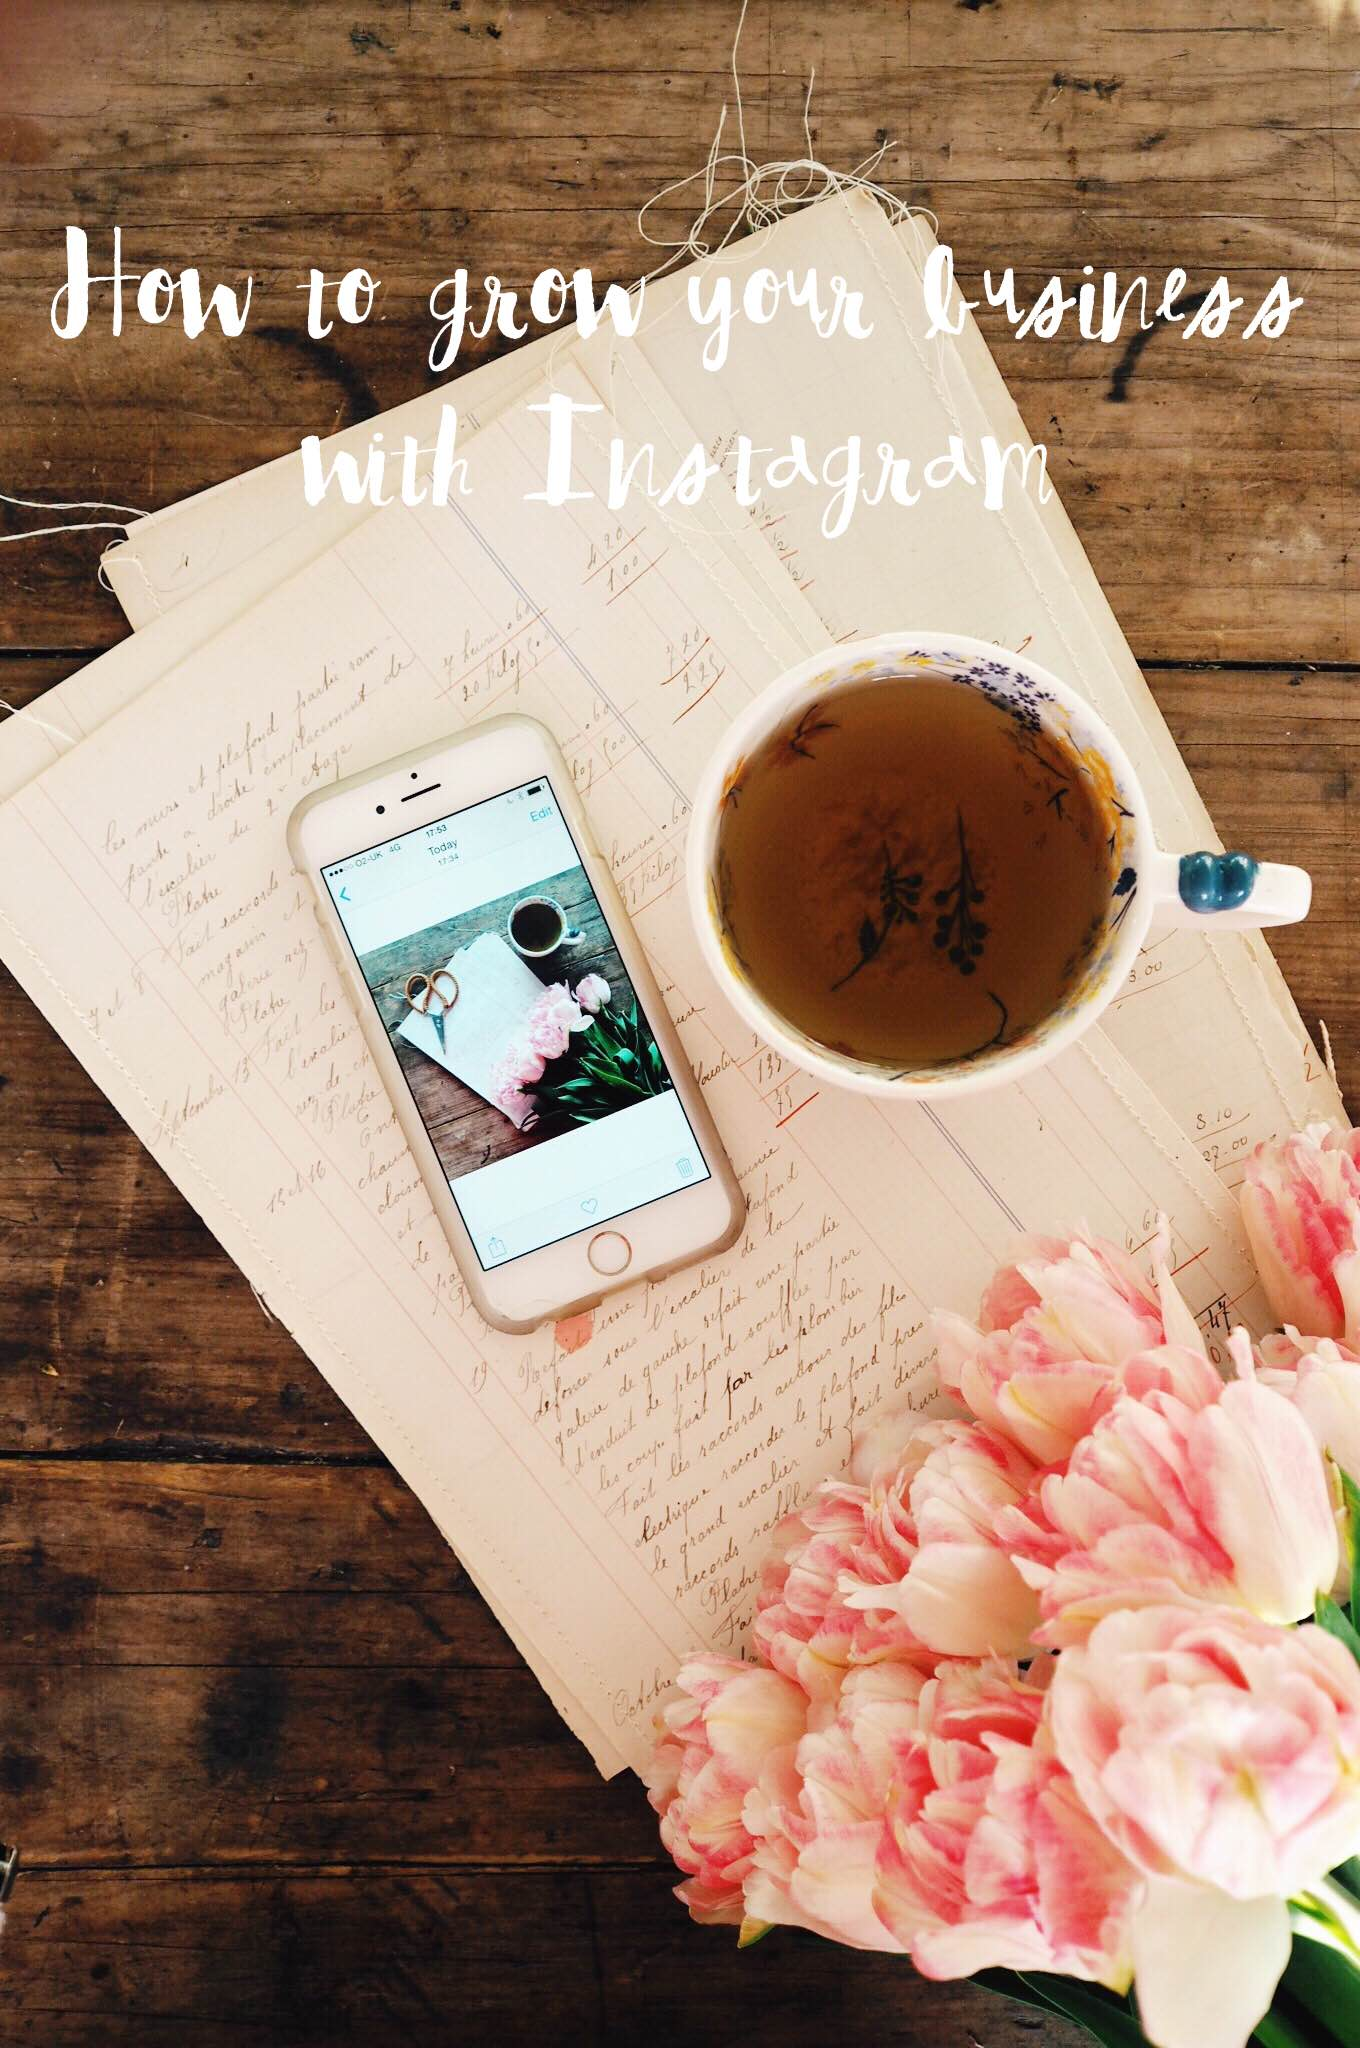 Tips for Building A Business Using Instagram